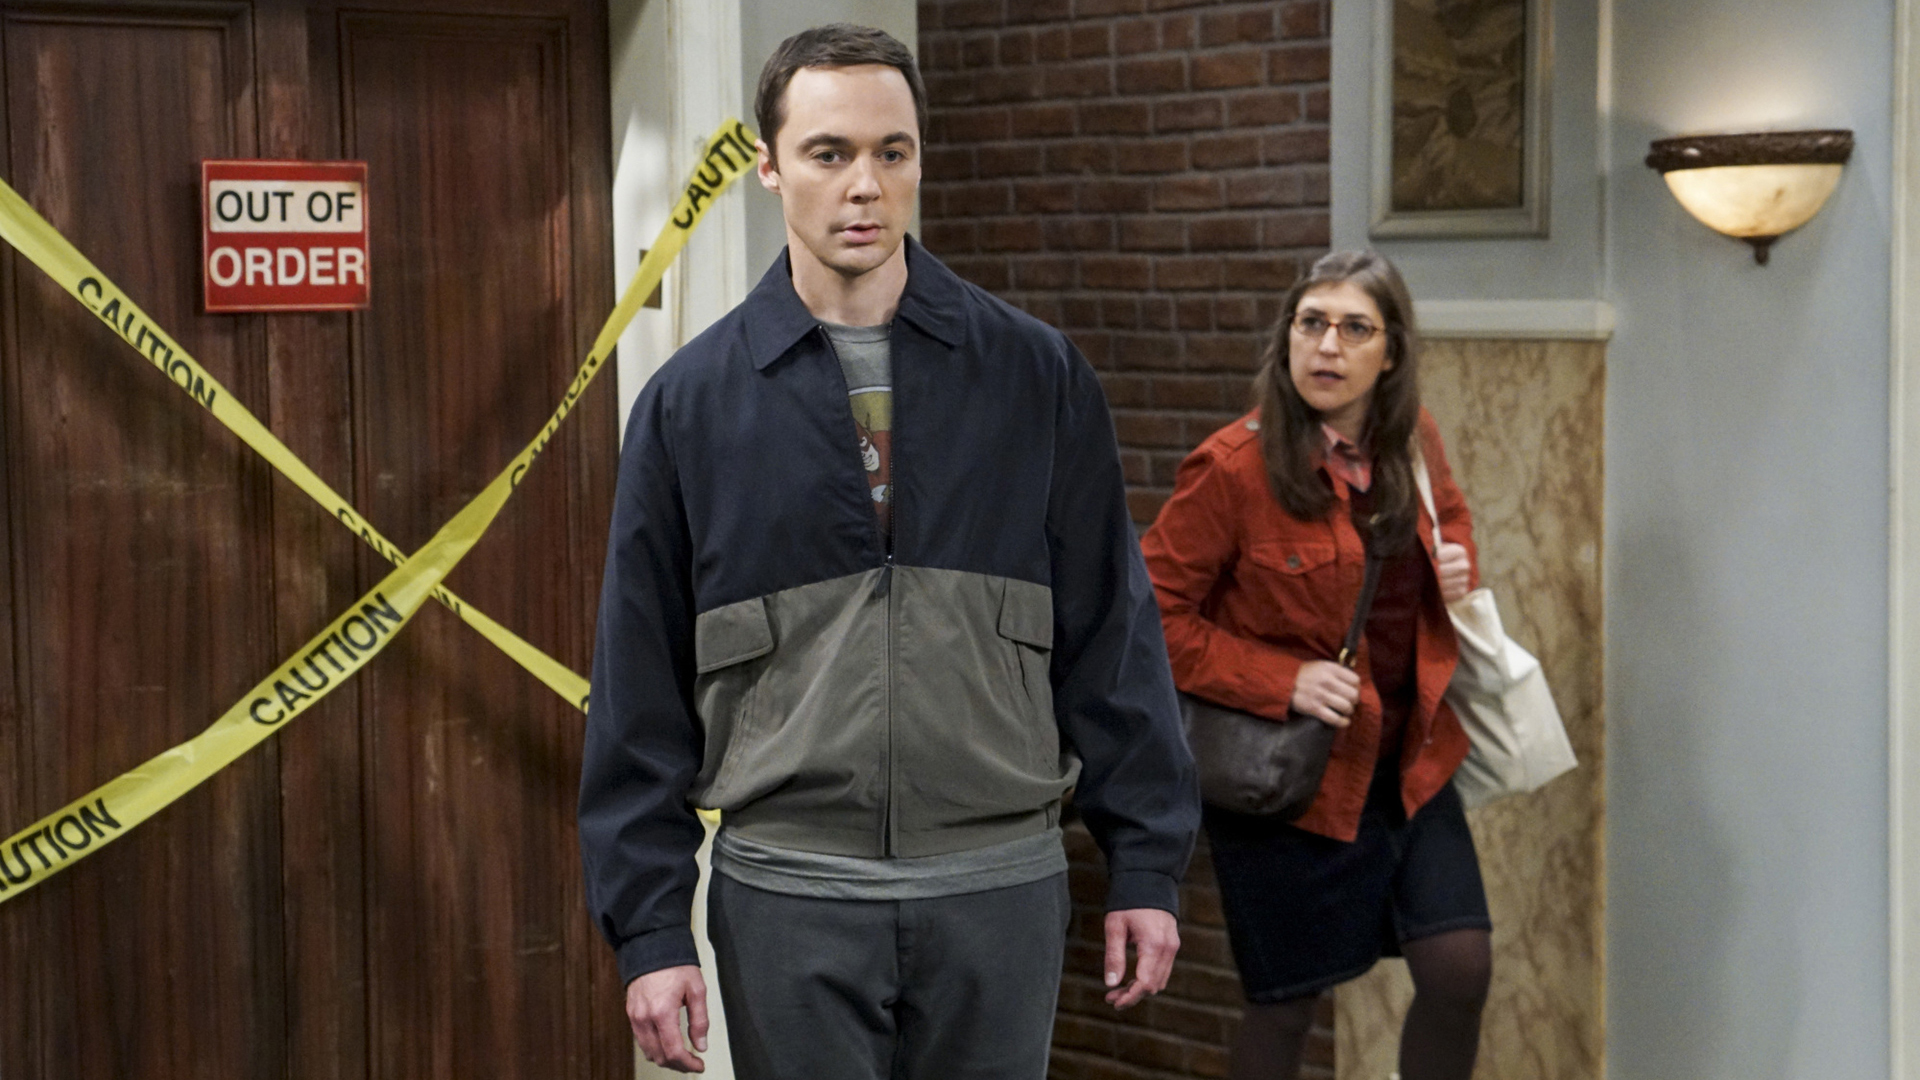 Amy finds Sheldon standing in the middle of the hall.